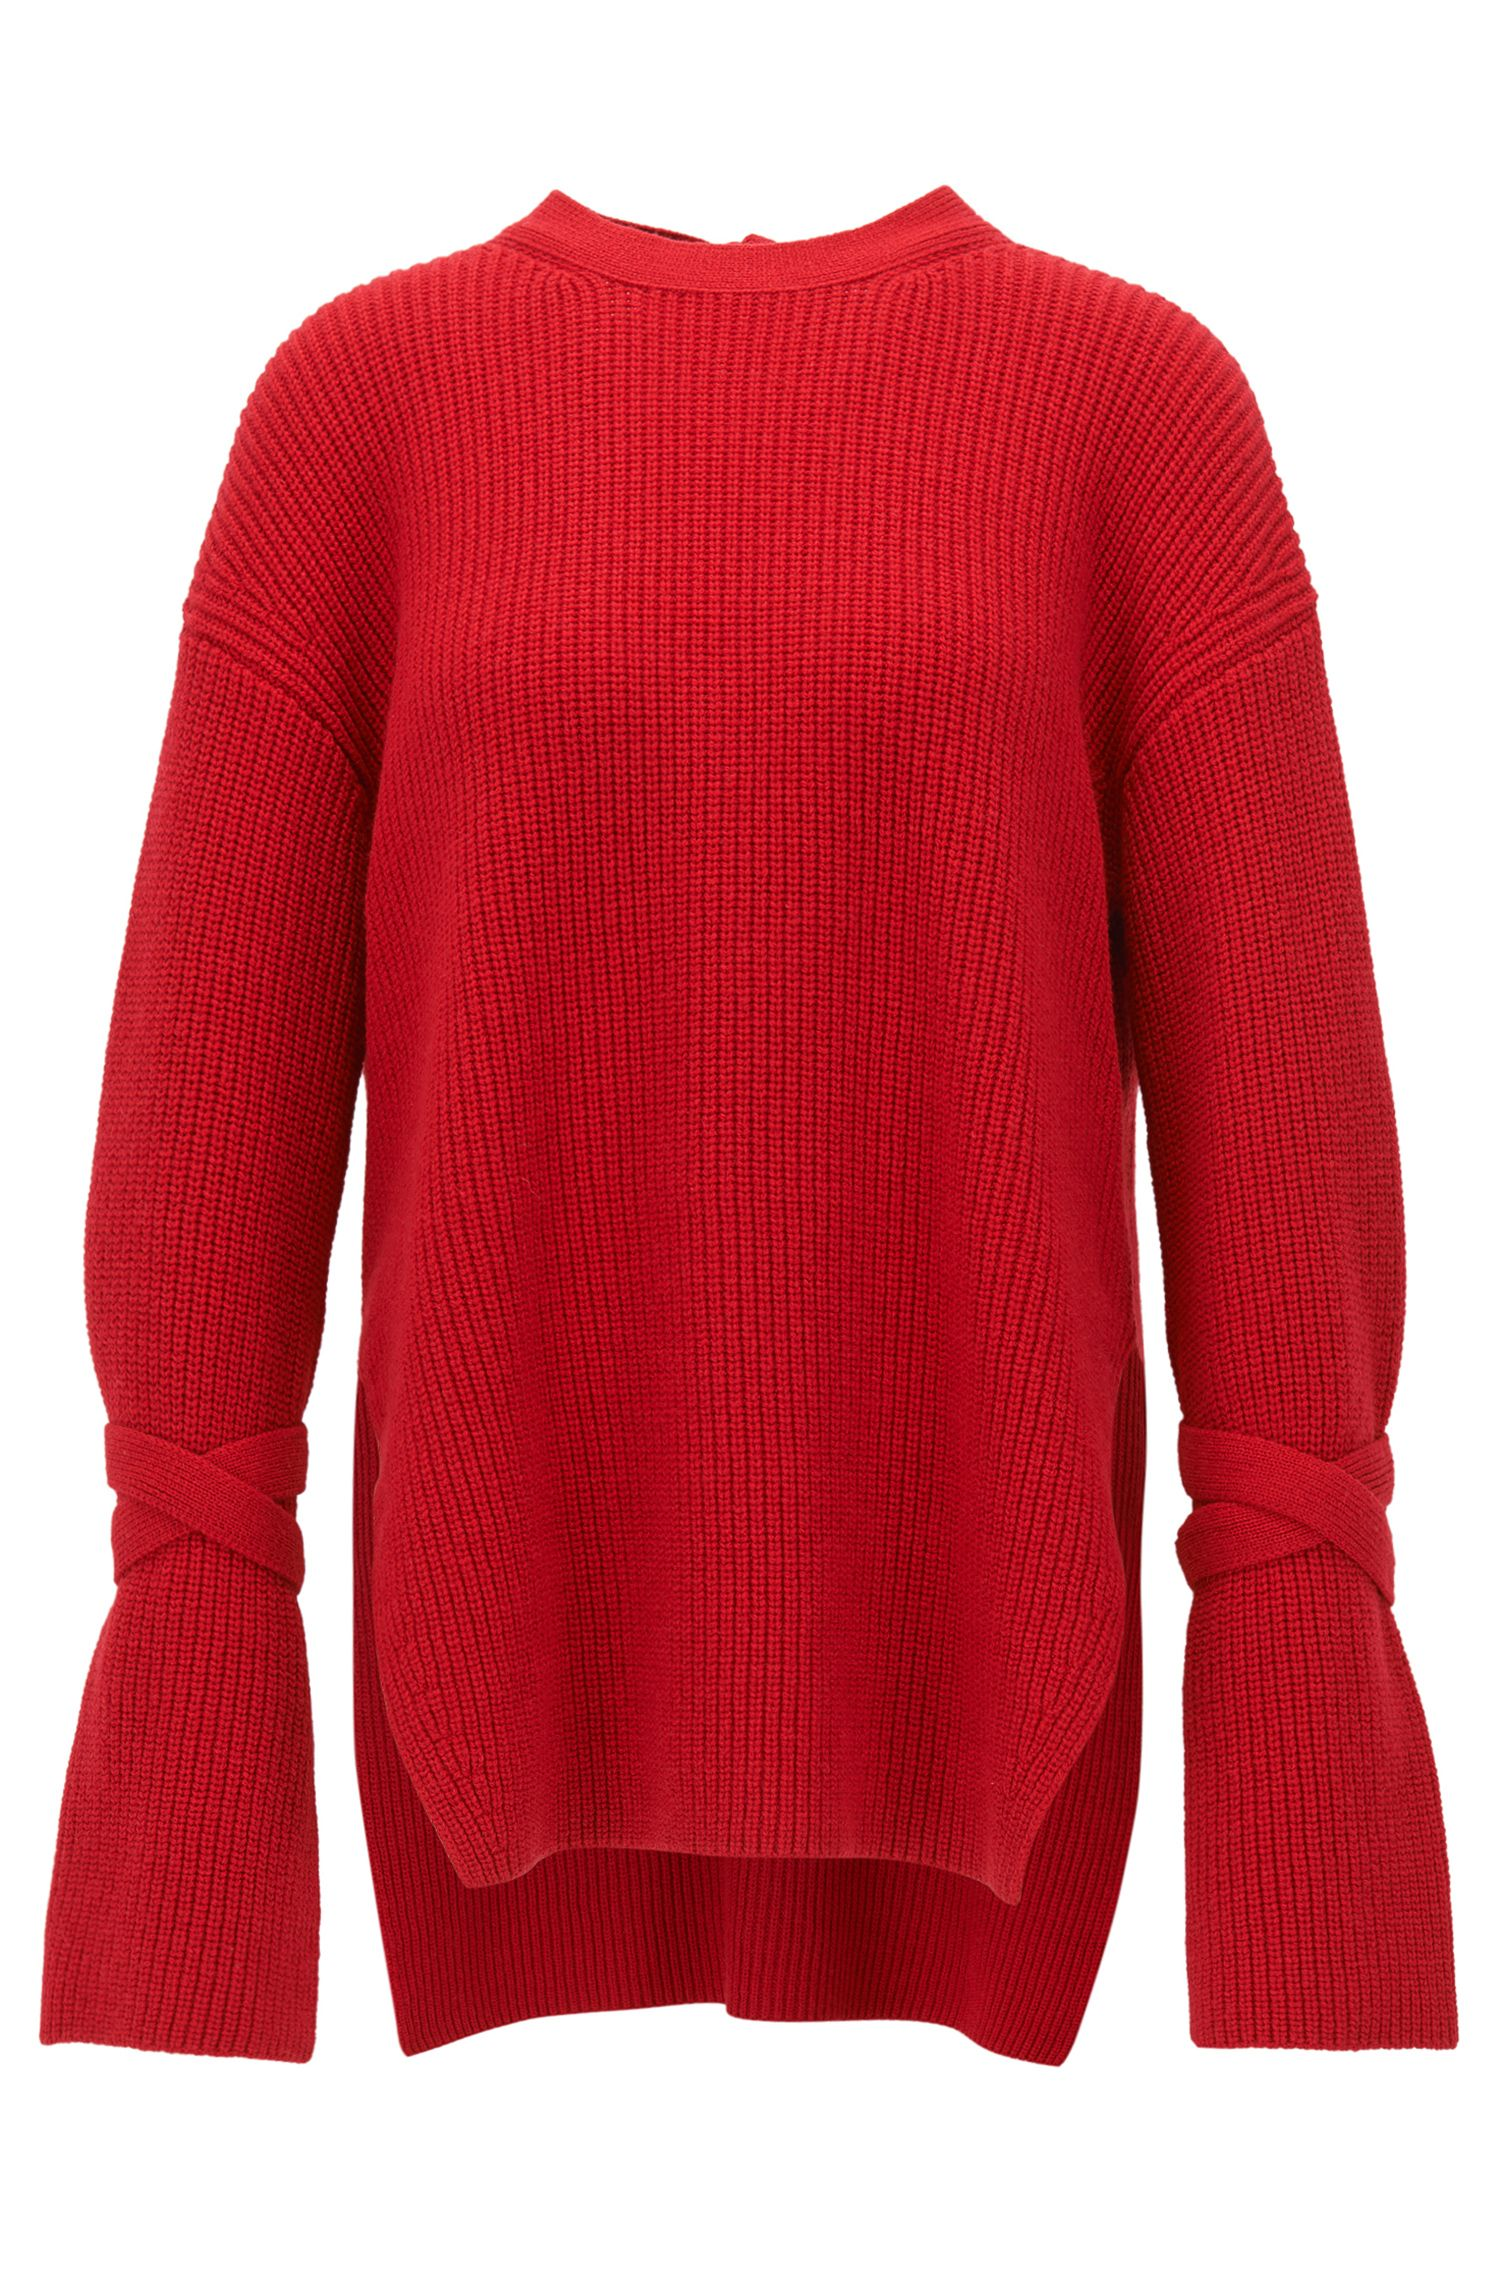 Maglione relaxed fit in misto lana con polsini originali